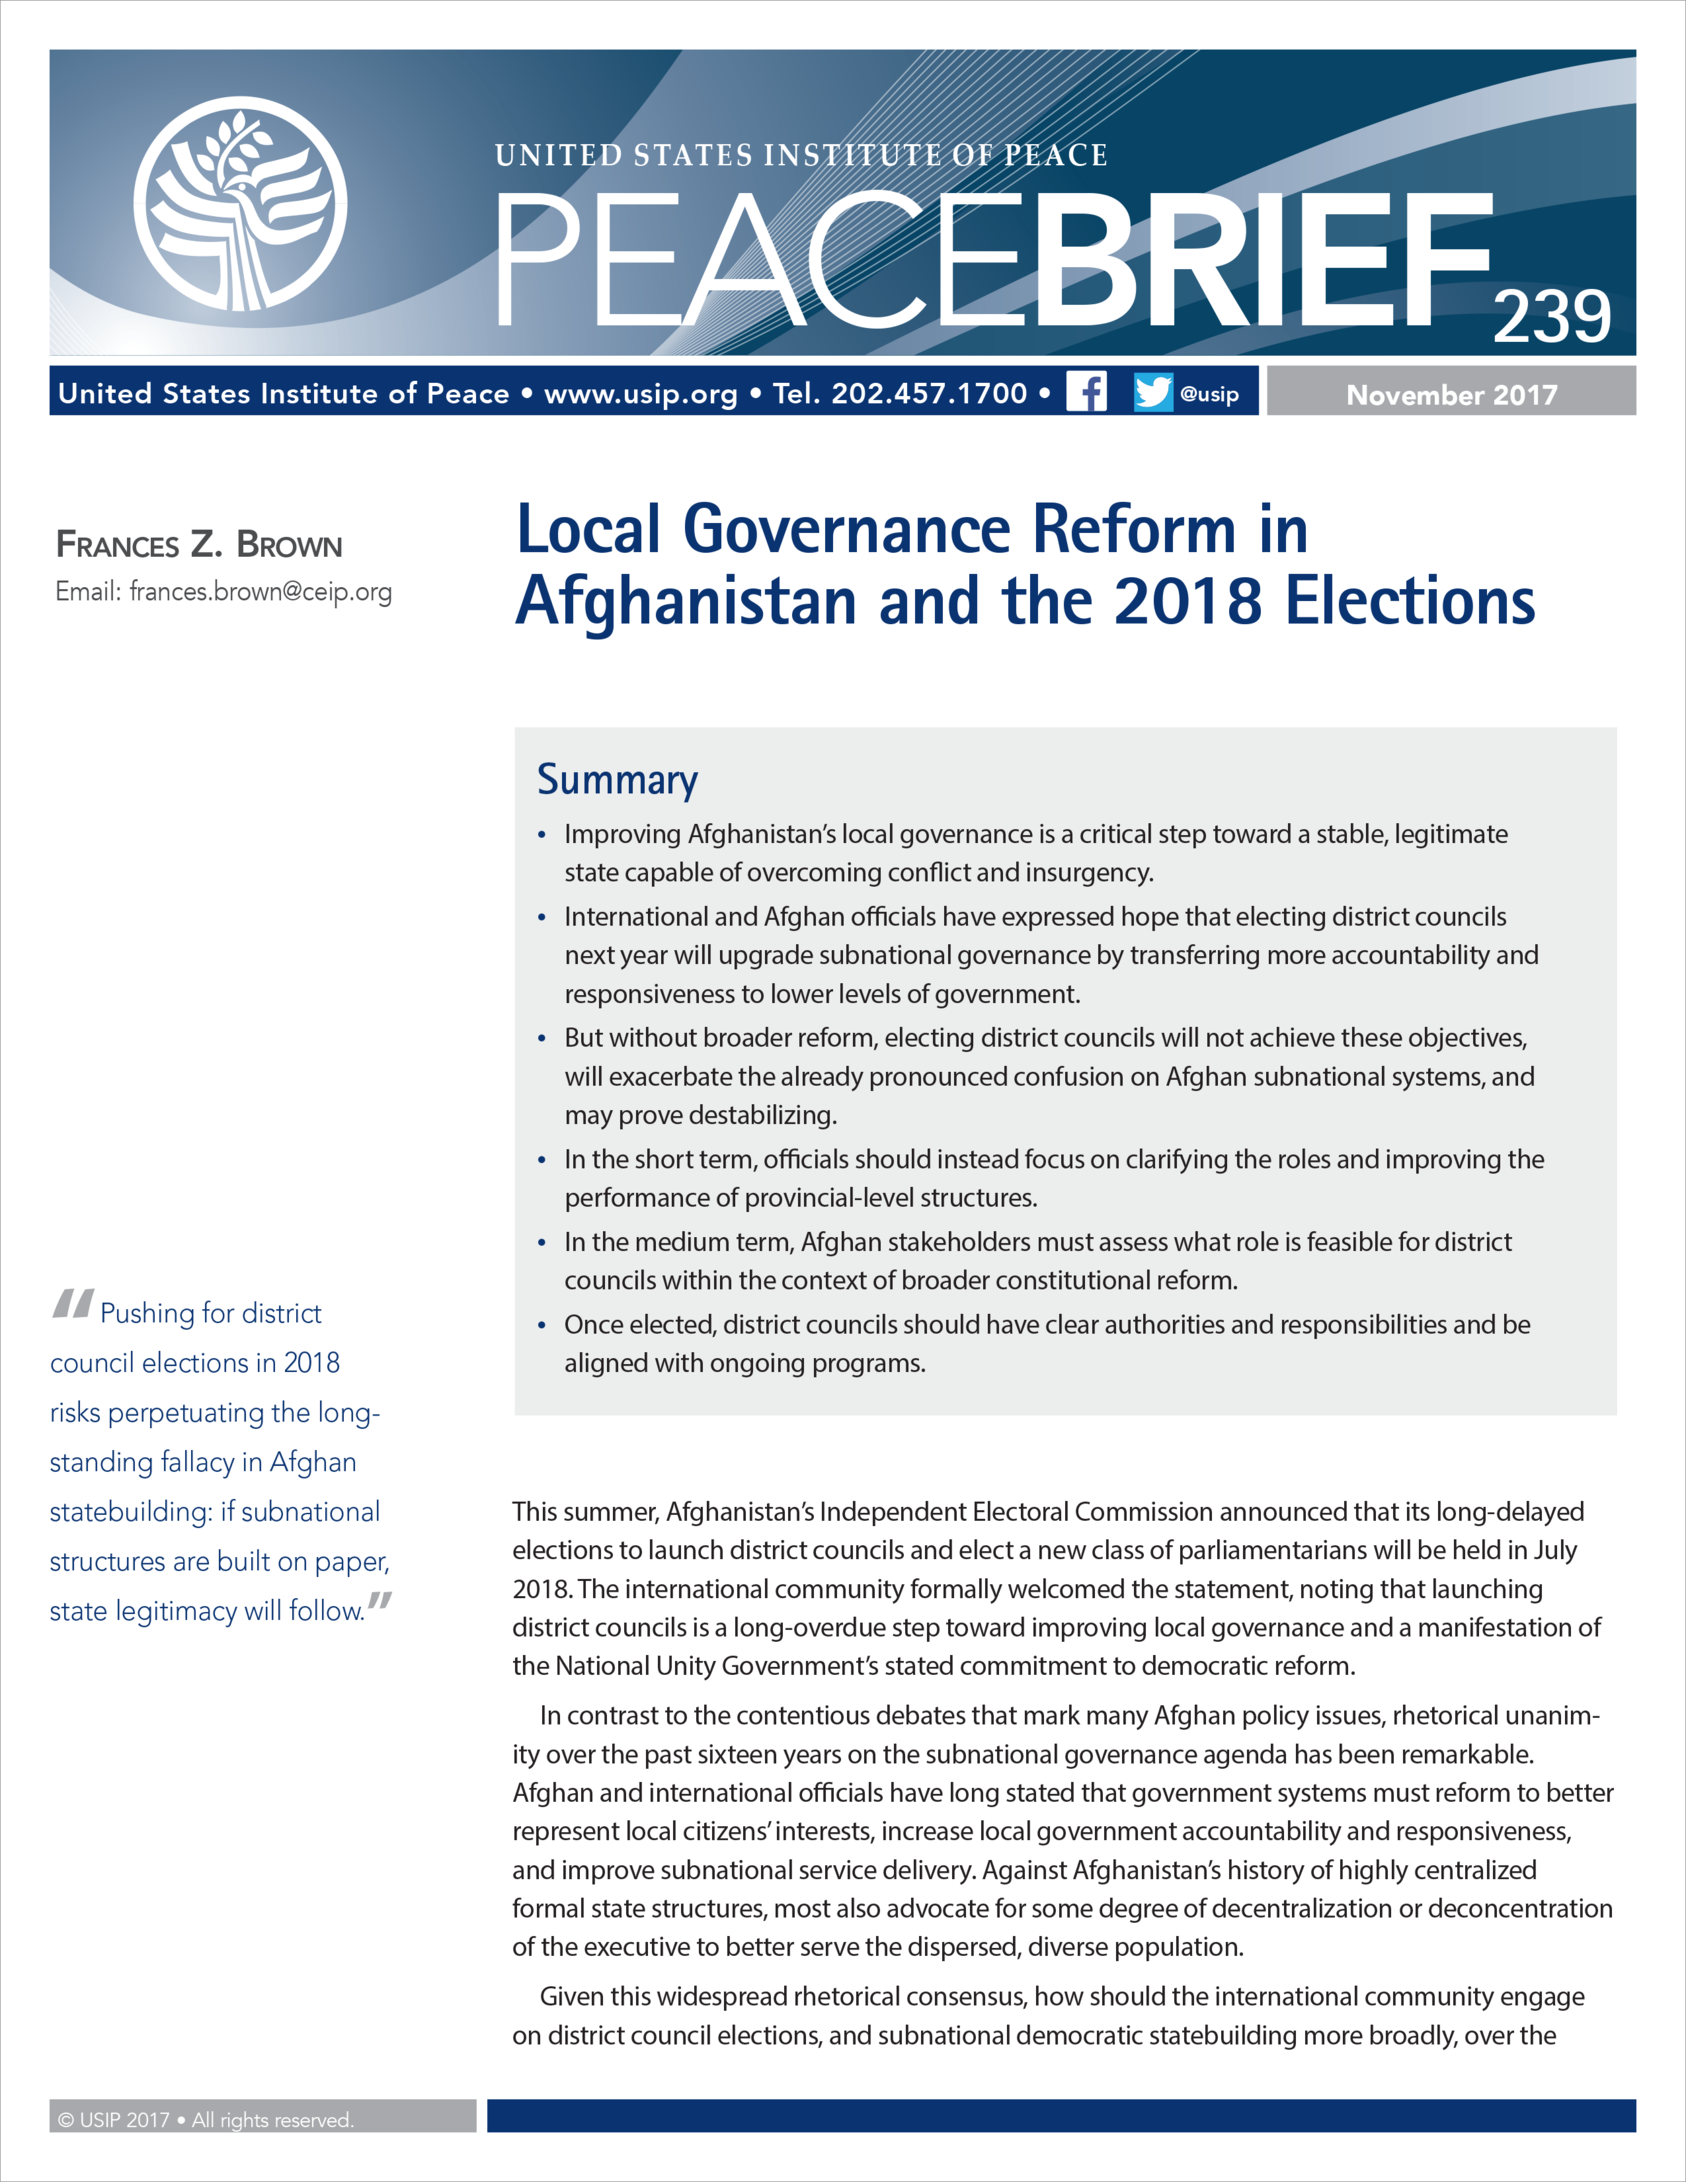 Local Governance Reform In Afghanistan And The 2018 Elections Headway 44 Sign Brown United States Institute Of Peace